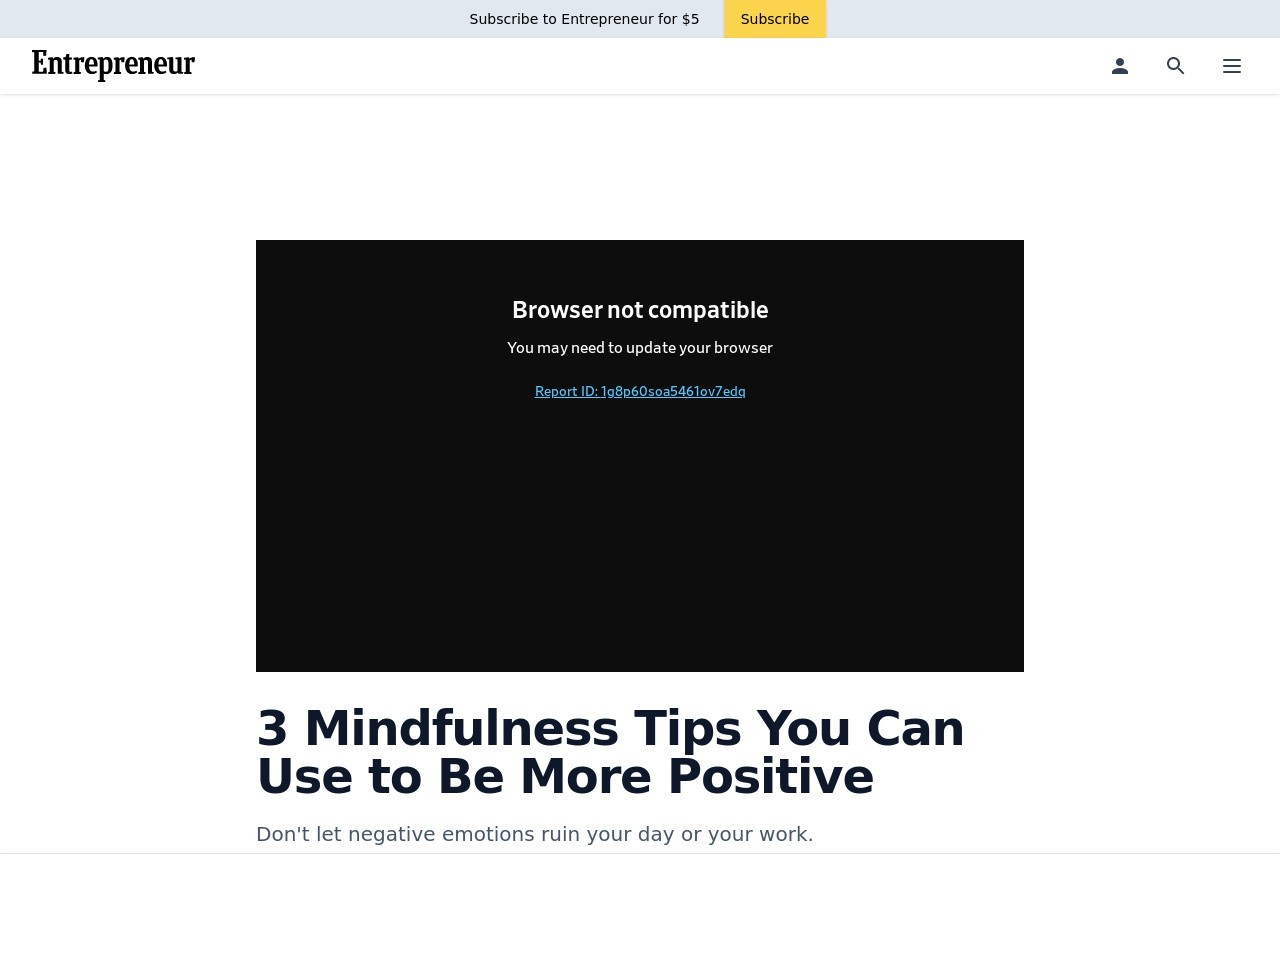 3 Mindfulness Tips You Can Use to Be More Positive